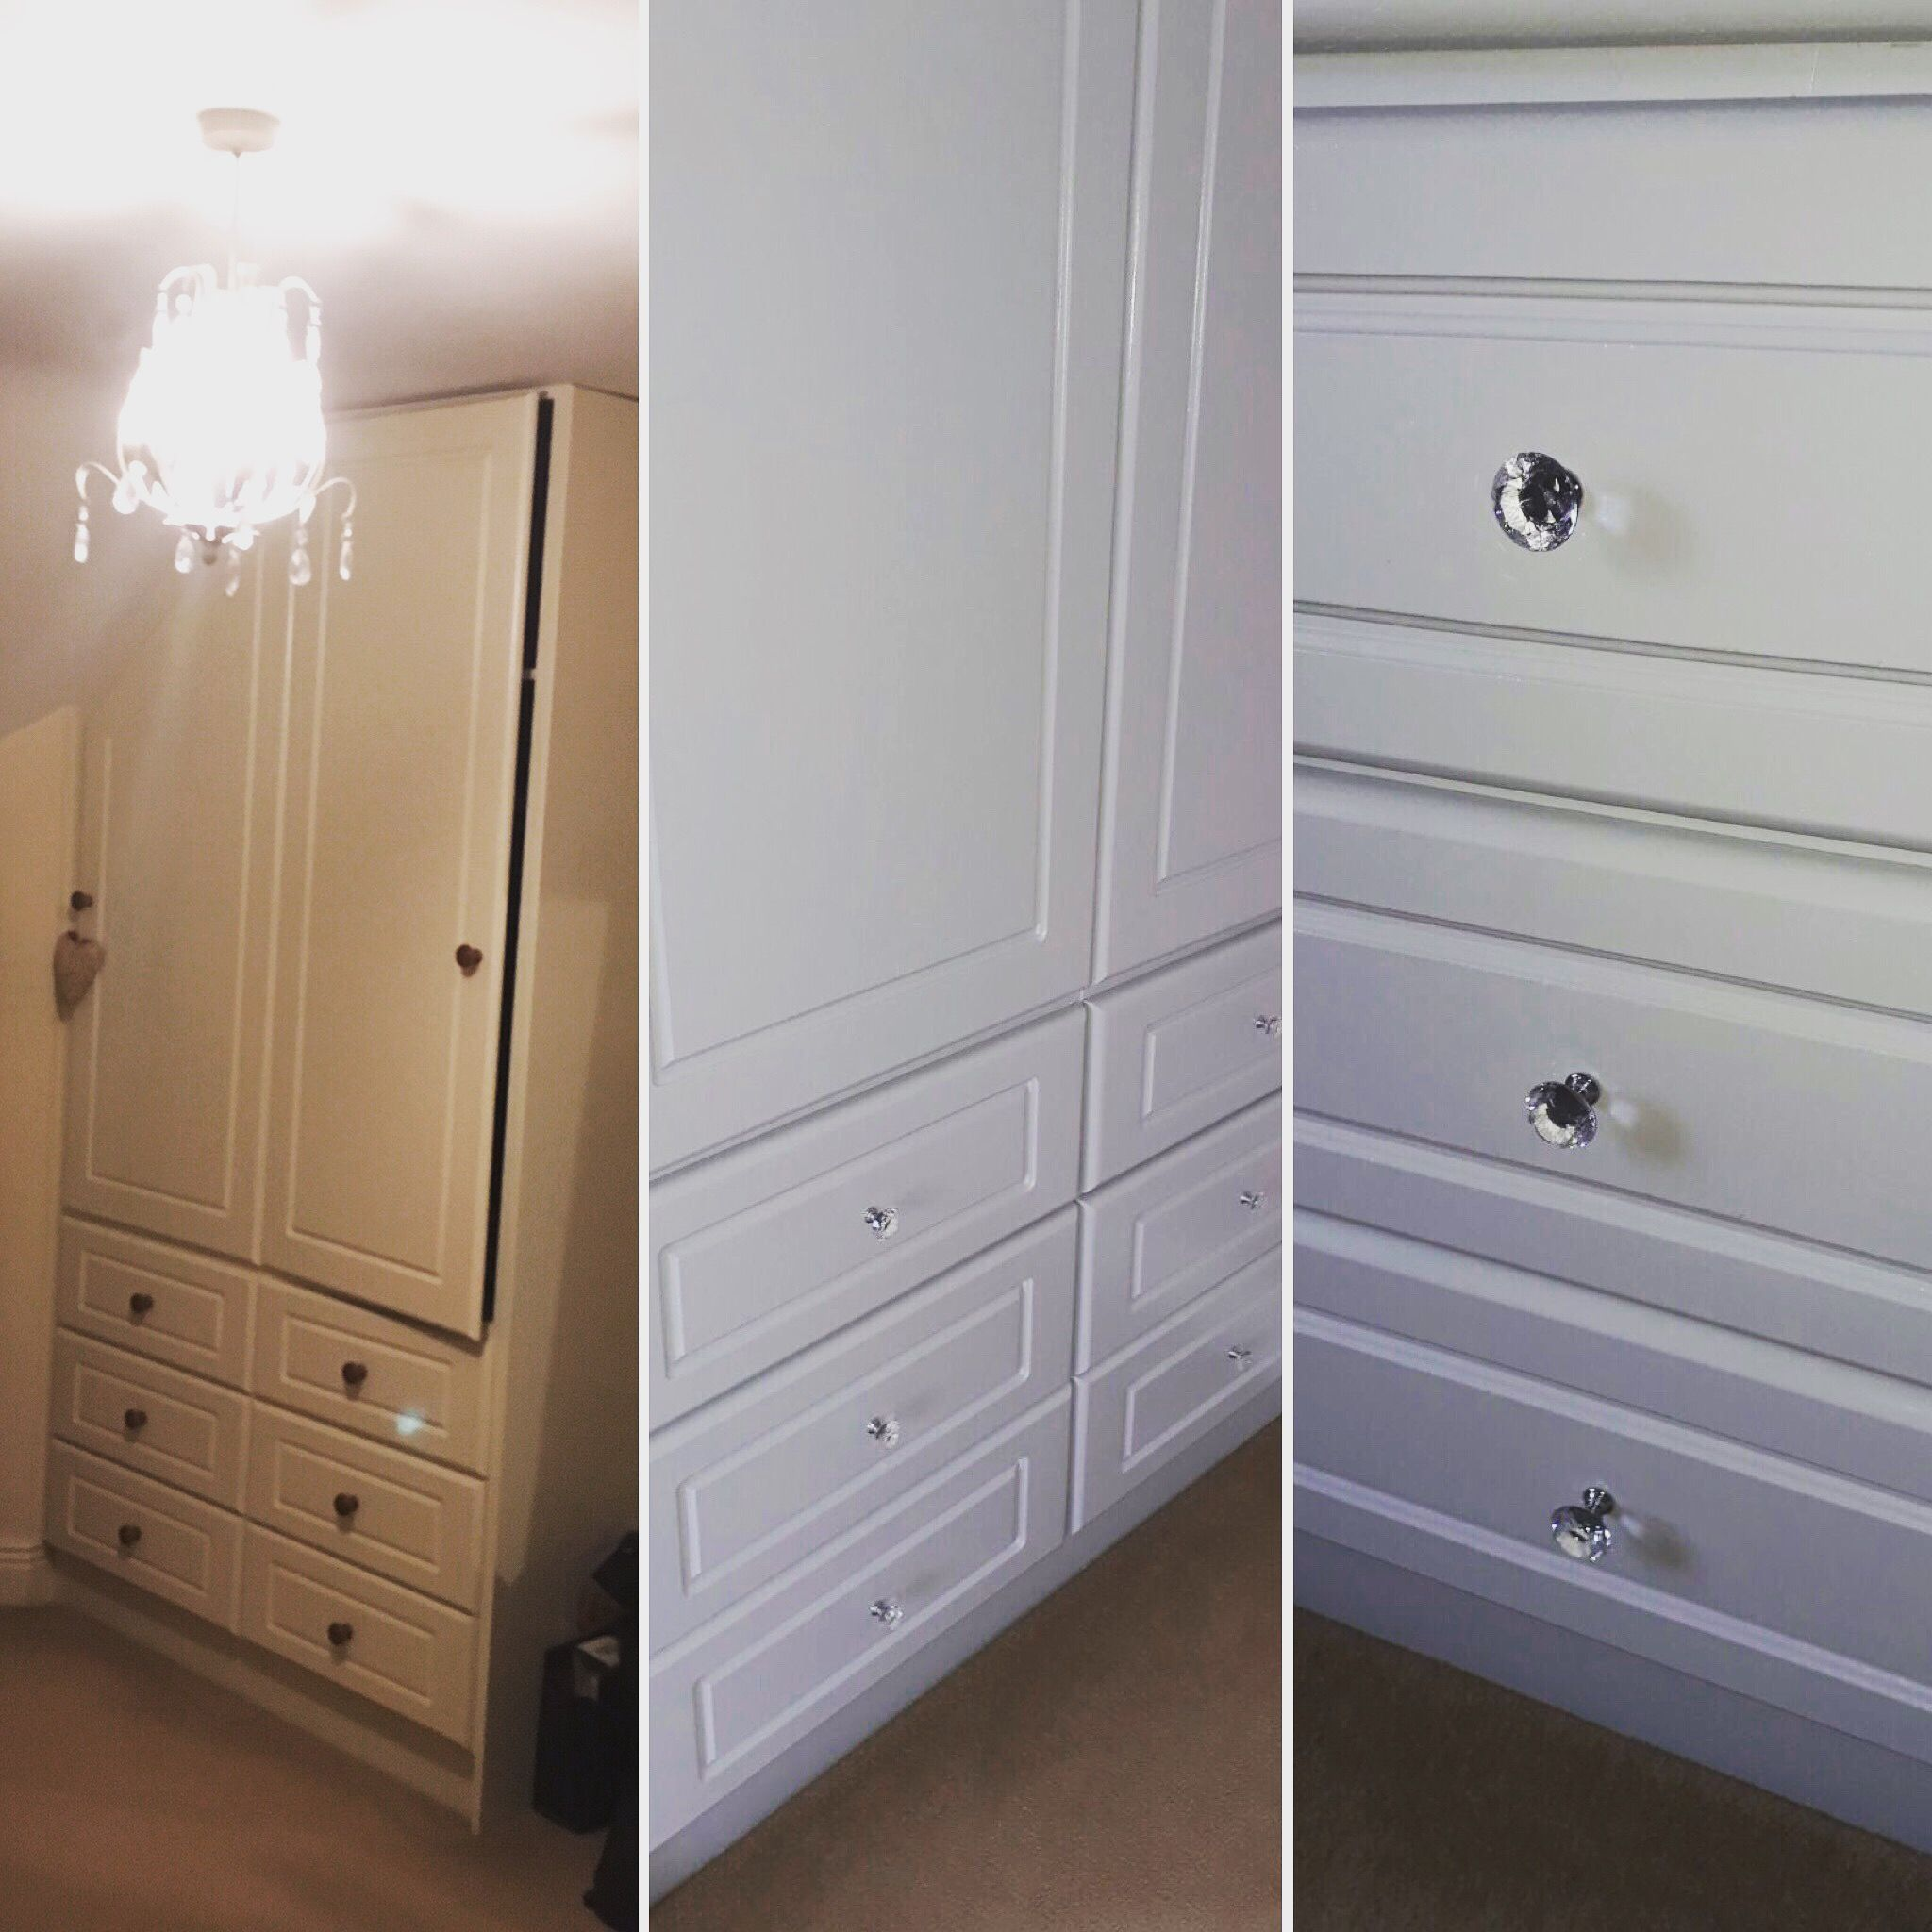 Updated Bedroom Wardrobes Using Dulux Satinwood Apron Grey Love This Colour Also Changed Doorknobs Really Pleased Dulux Dulux Satinwood Bedroom Makeover